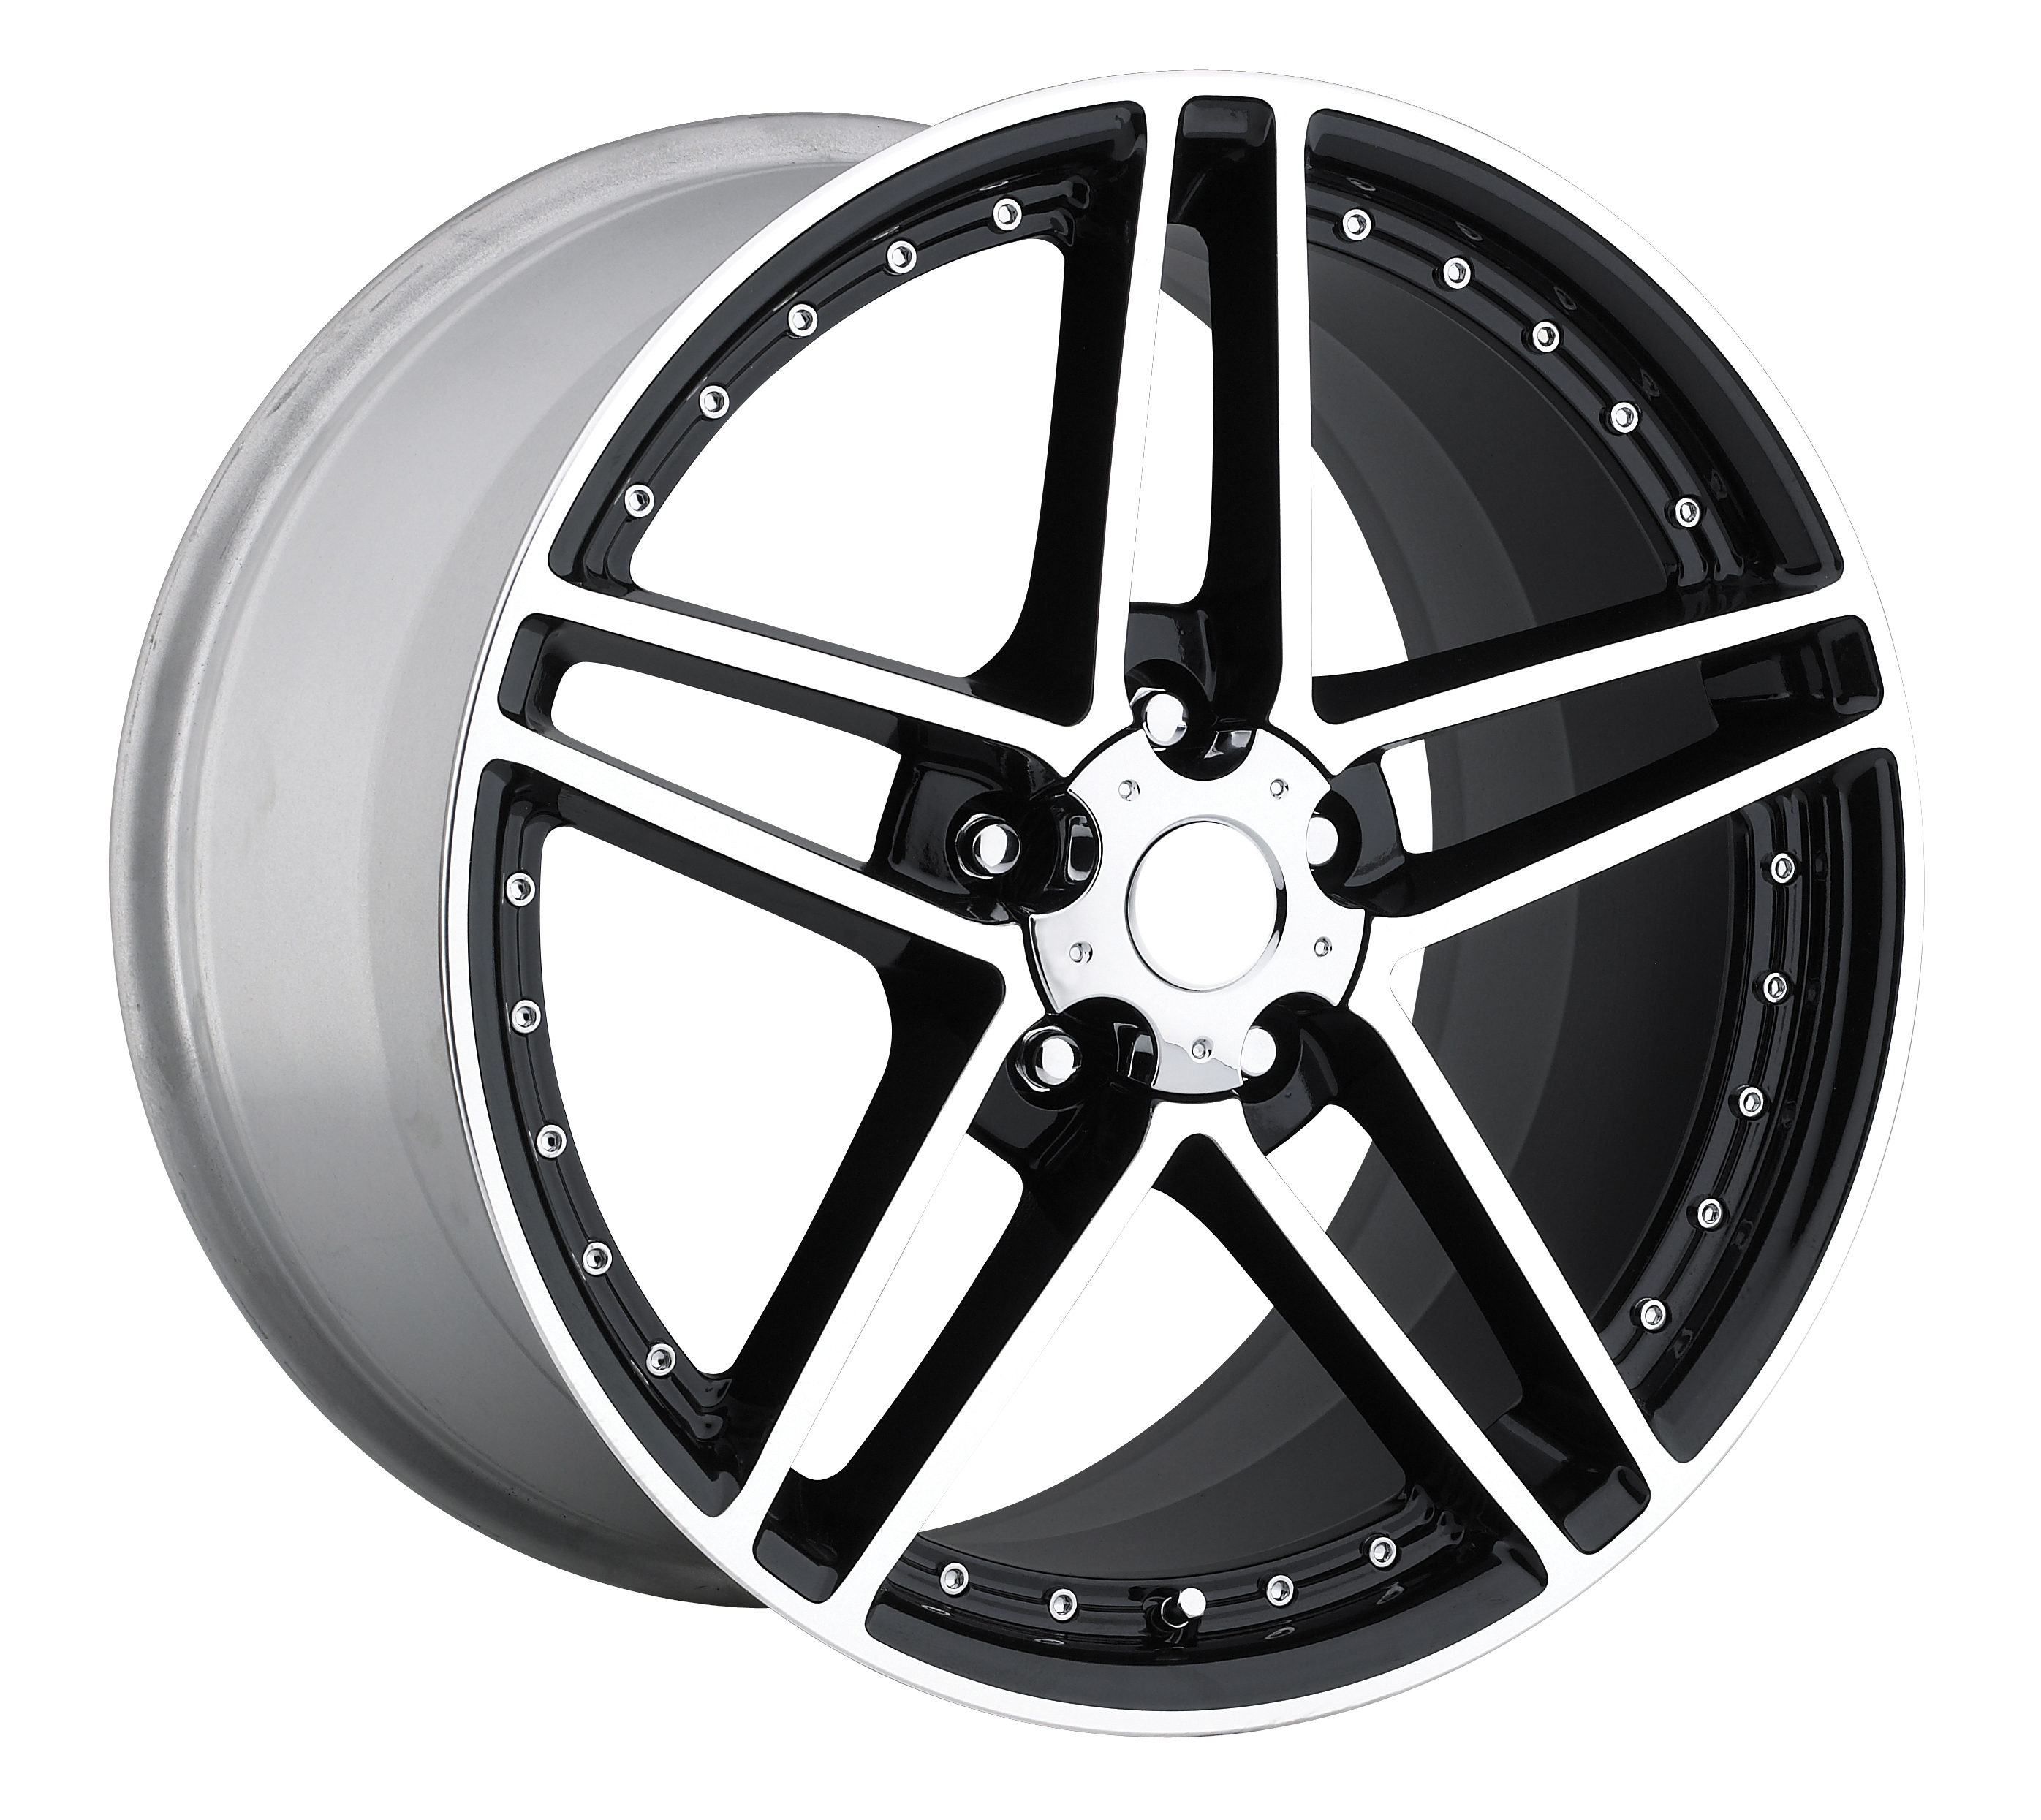 Chevrolet Corvette 1997-2012 18x10.5 5x4.75 +56 - C6 Z06 Motorsport Wheel -  Black Machine Face With Cap